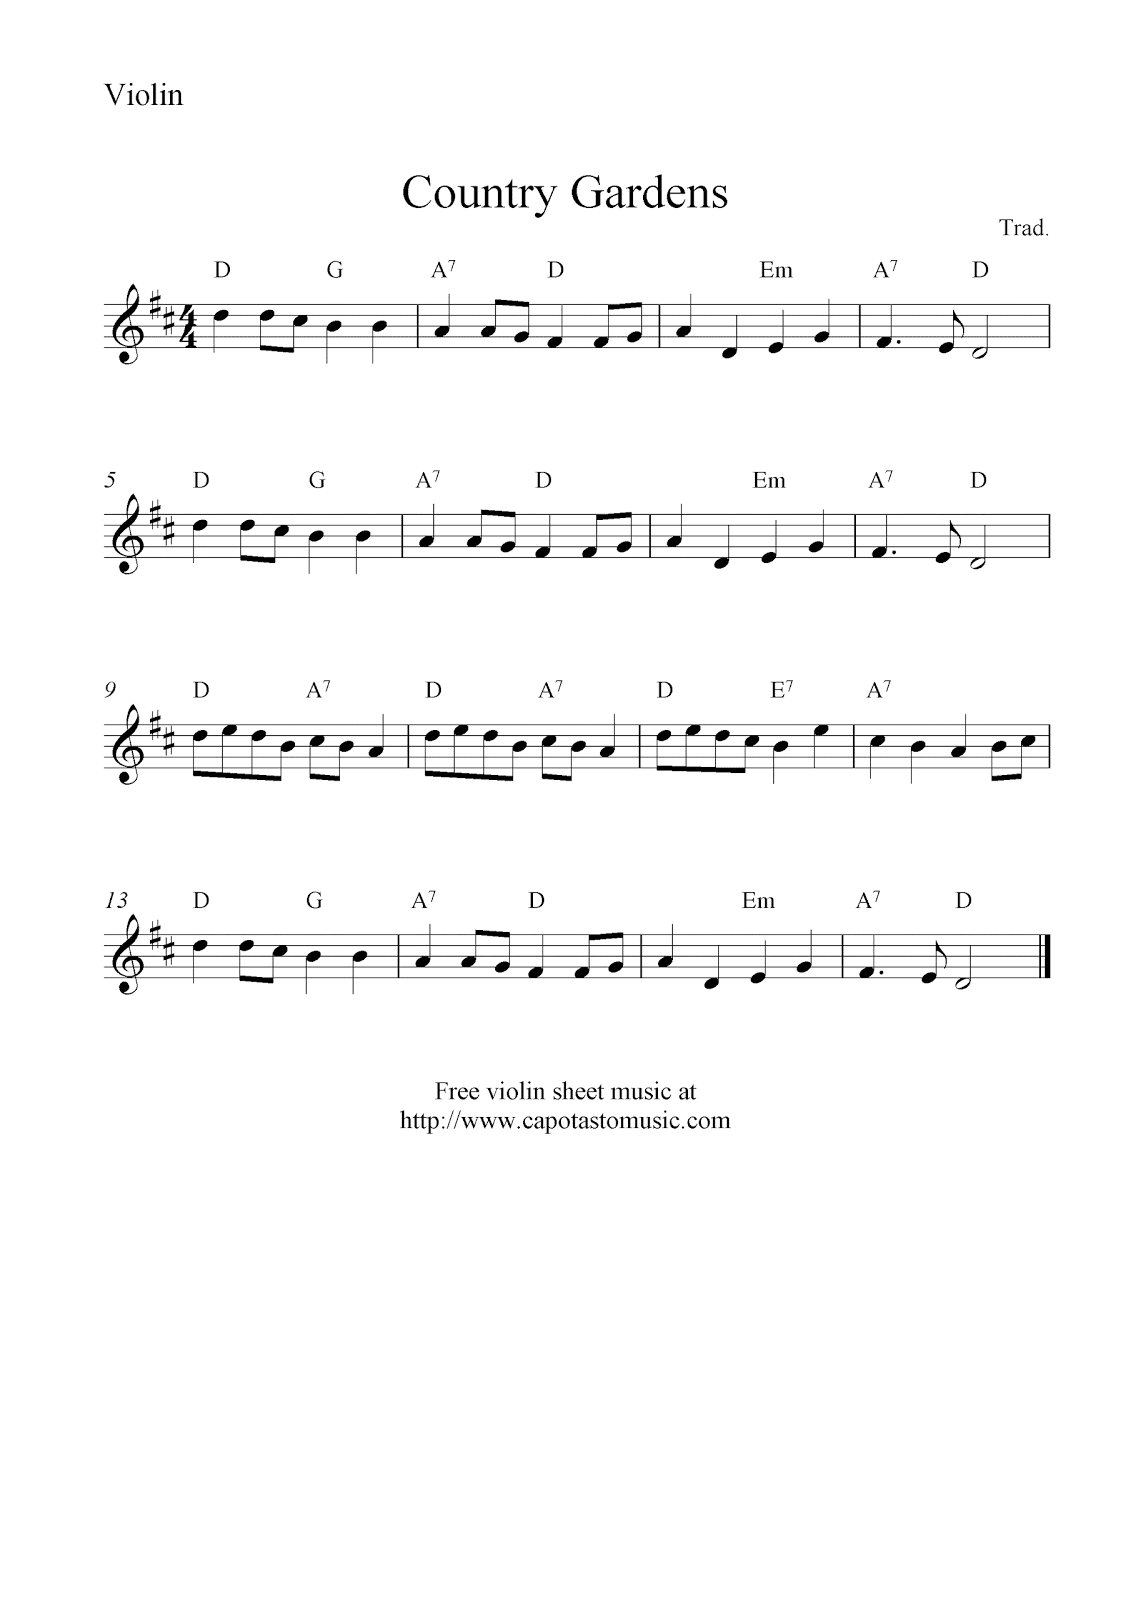 Free violin sheet music country gardens